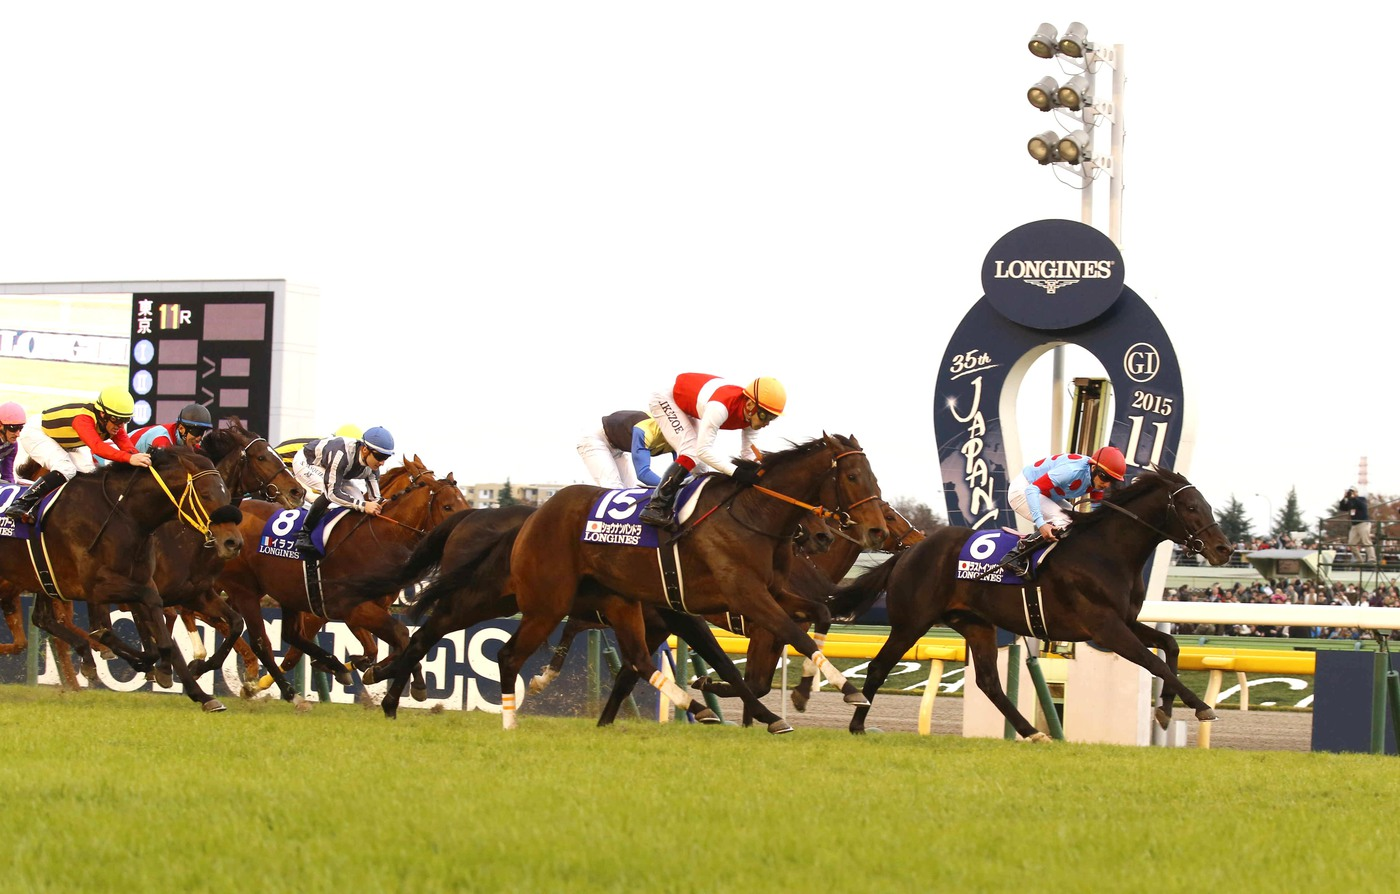 Longines Flat Racing Event: 2015 Japan Cup in association with Longines won by Shonan Pandora 1